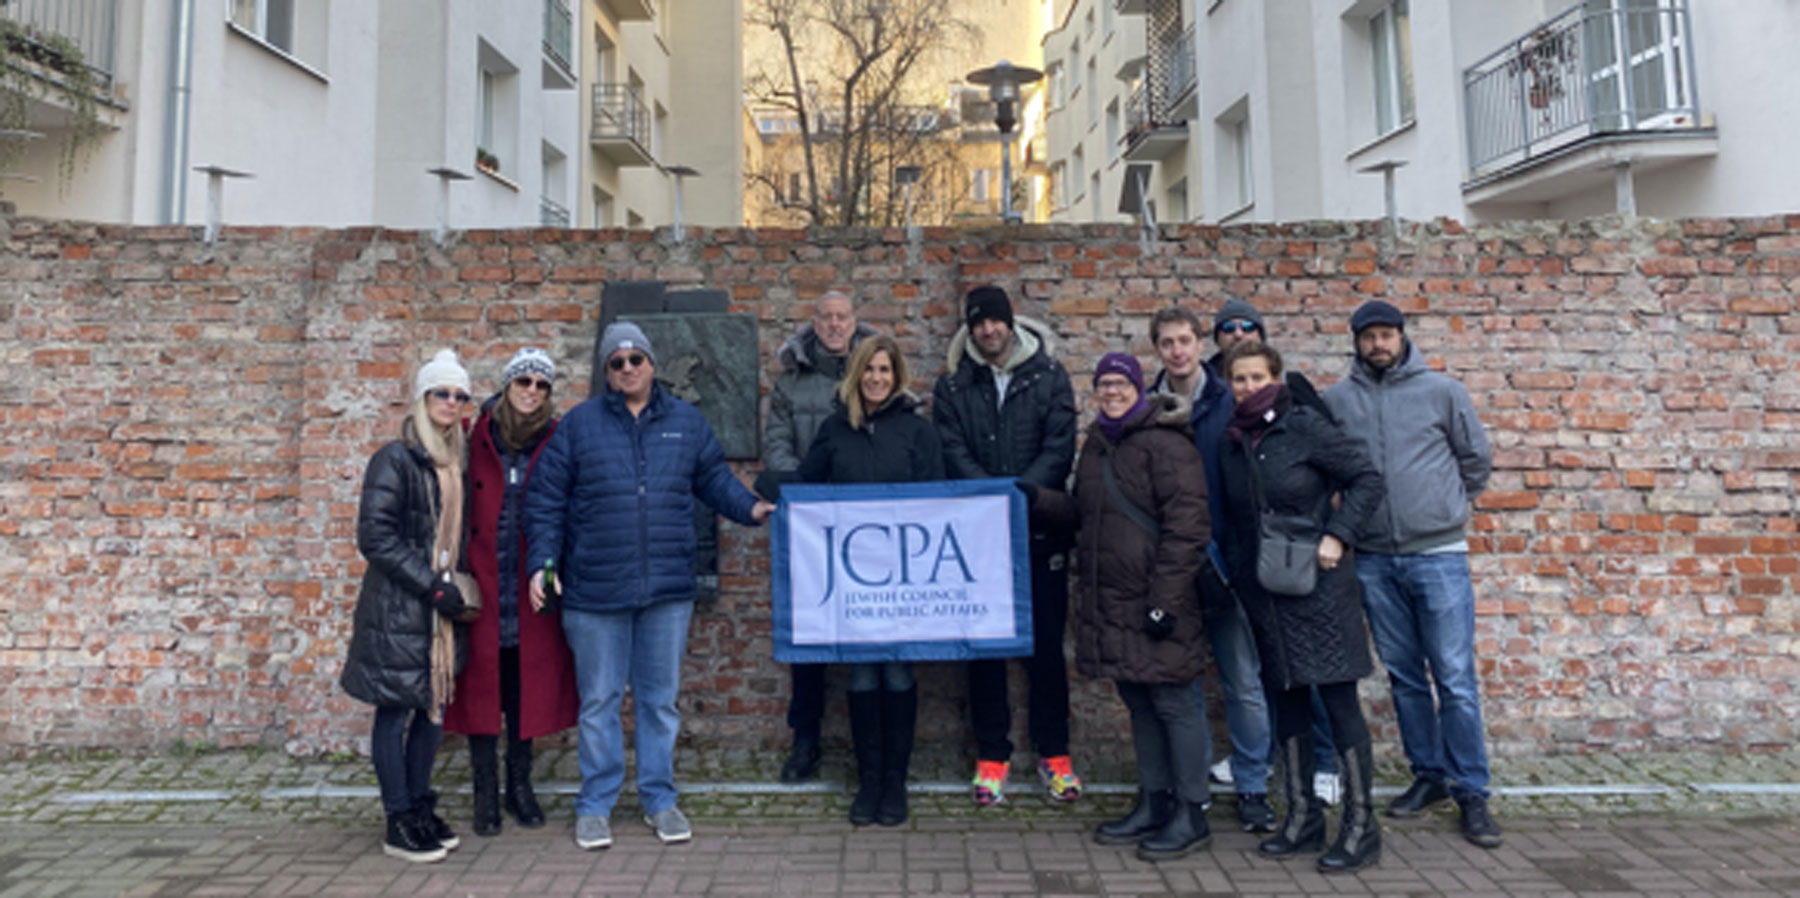 JCPA group picture